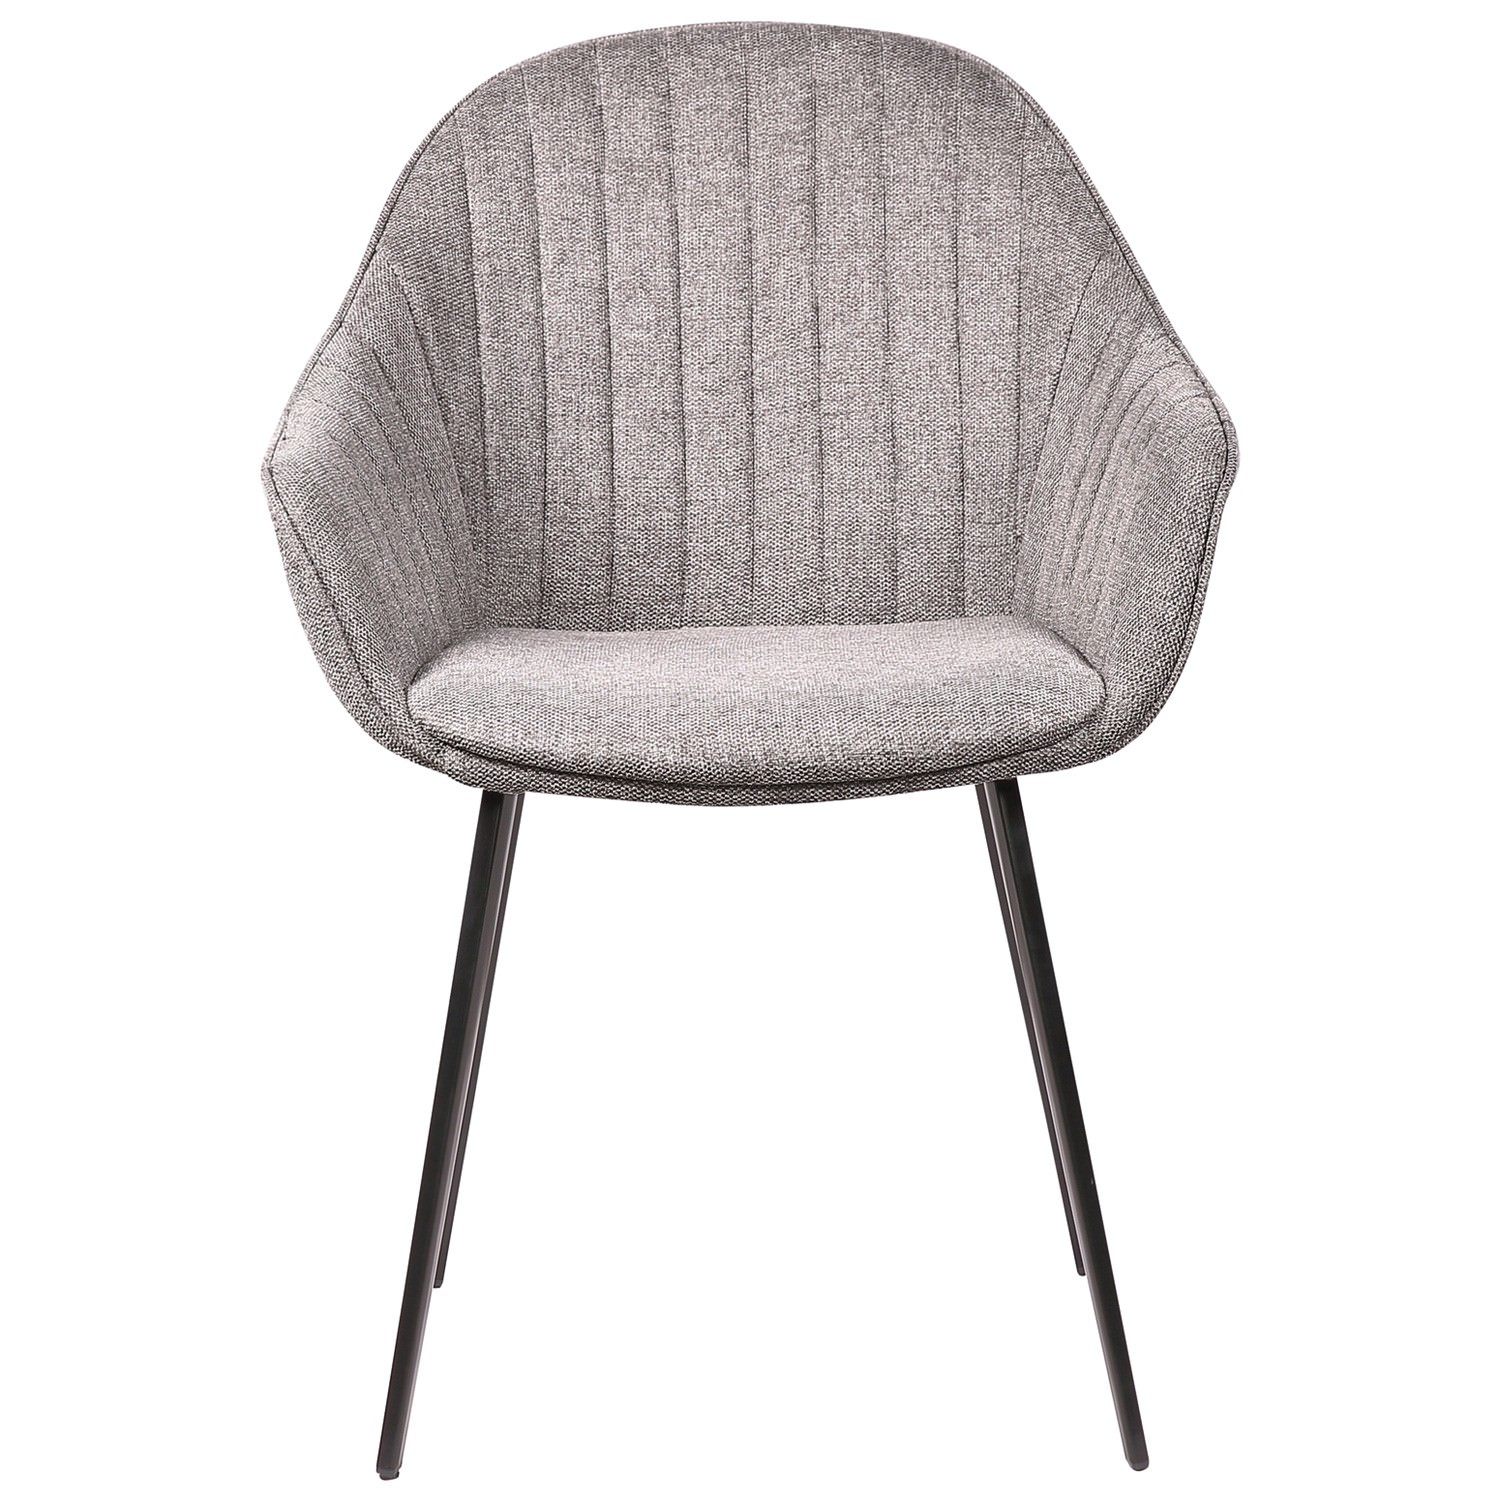 Eford Commercial Grade Fabric Dining Chair, Grey